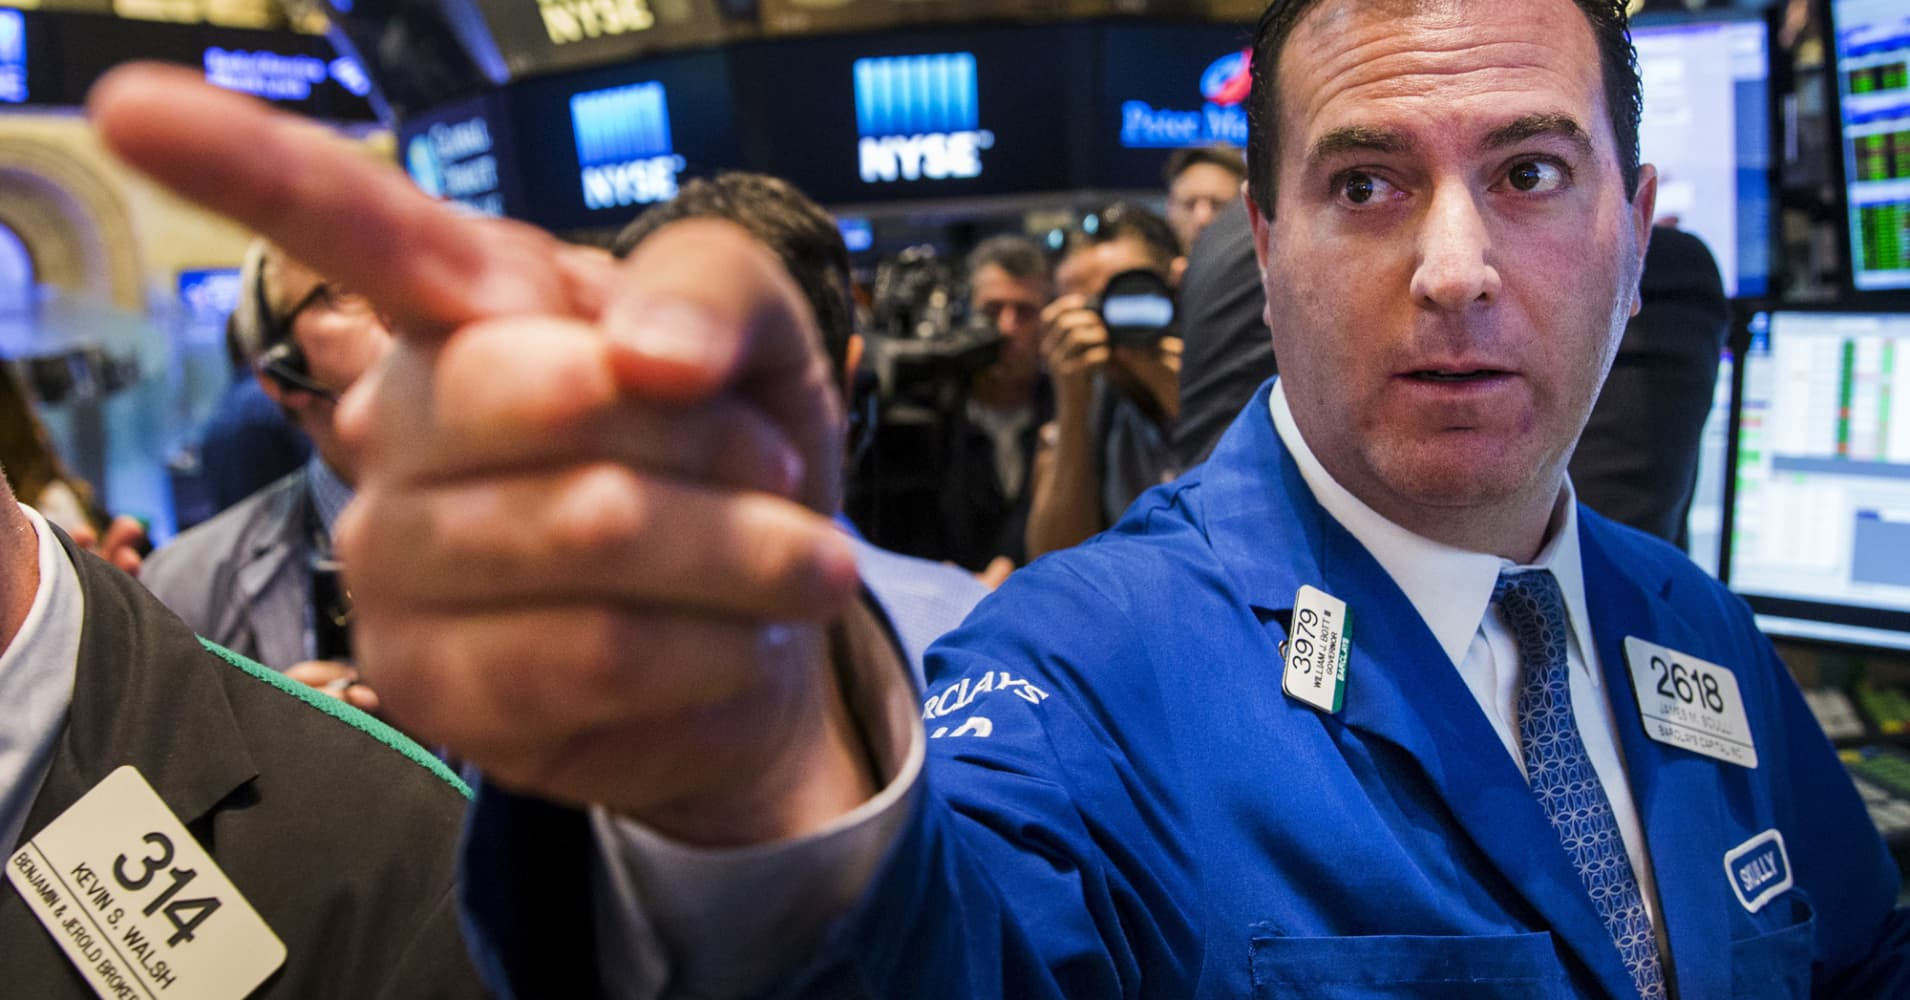 Investors may think the market is reaching a top, but I'm not buying it, Jim Cramer says